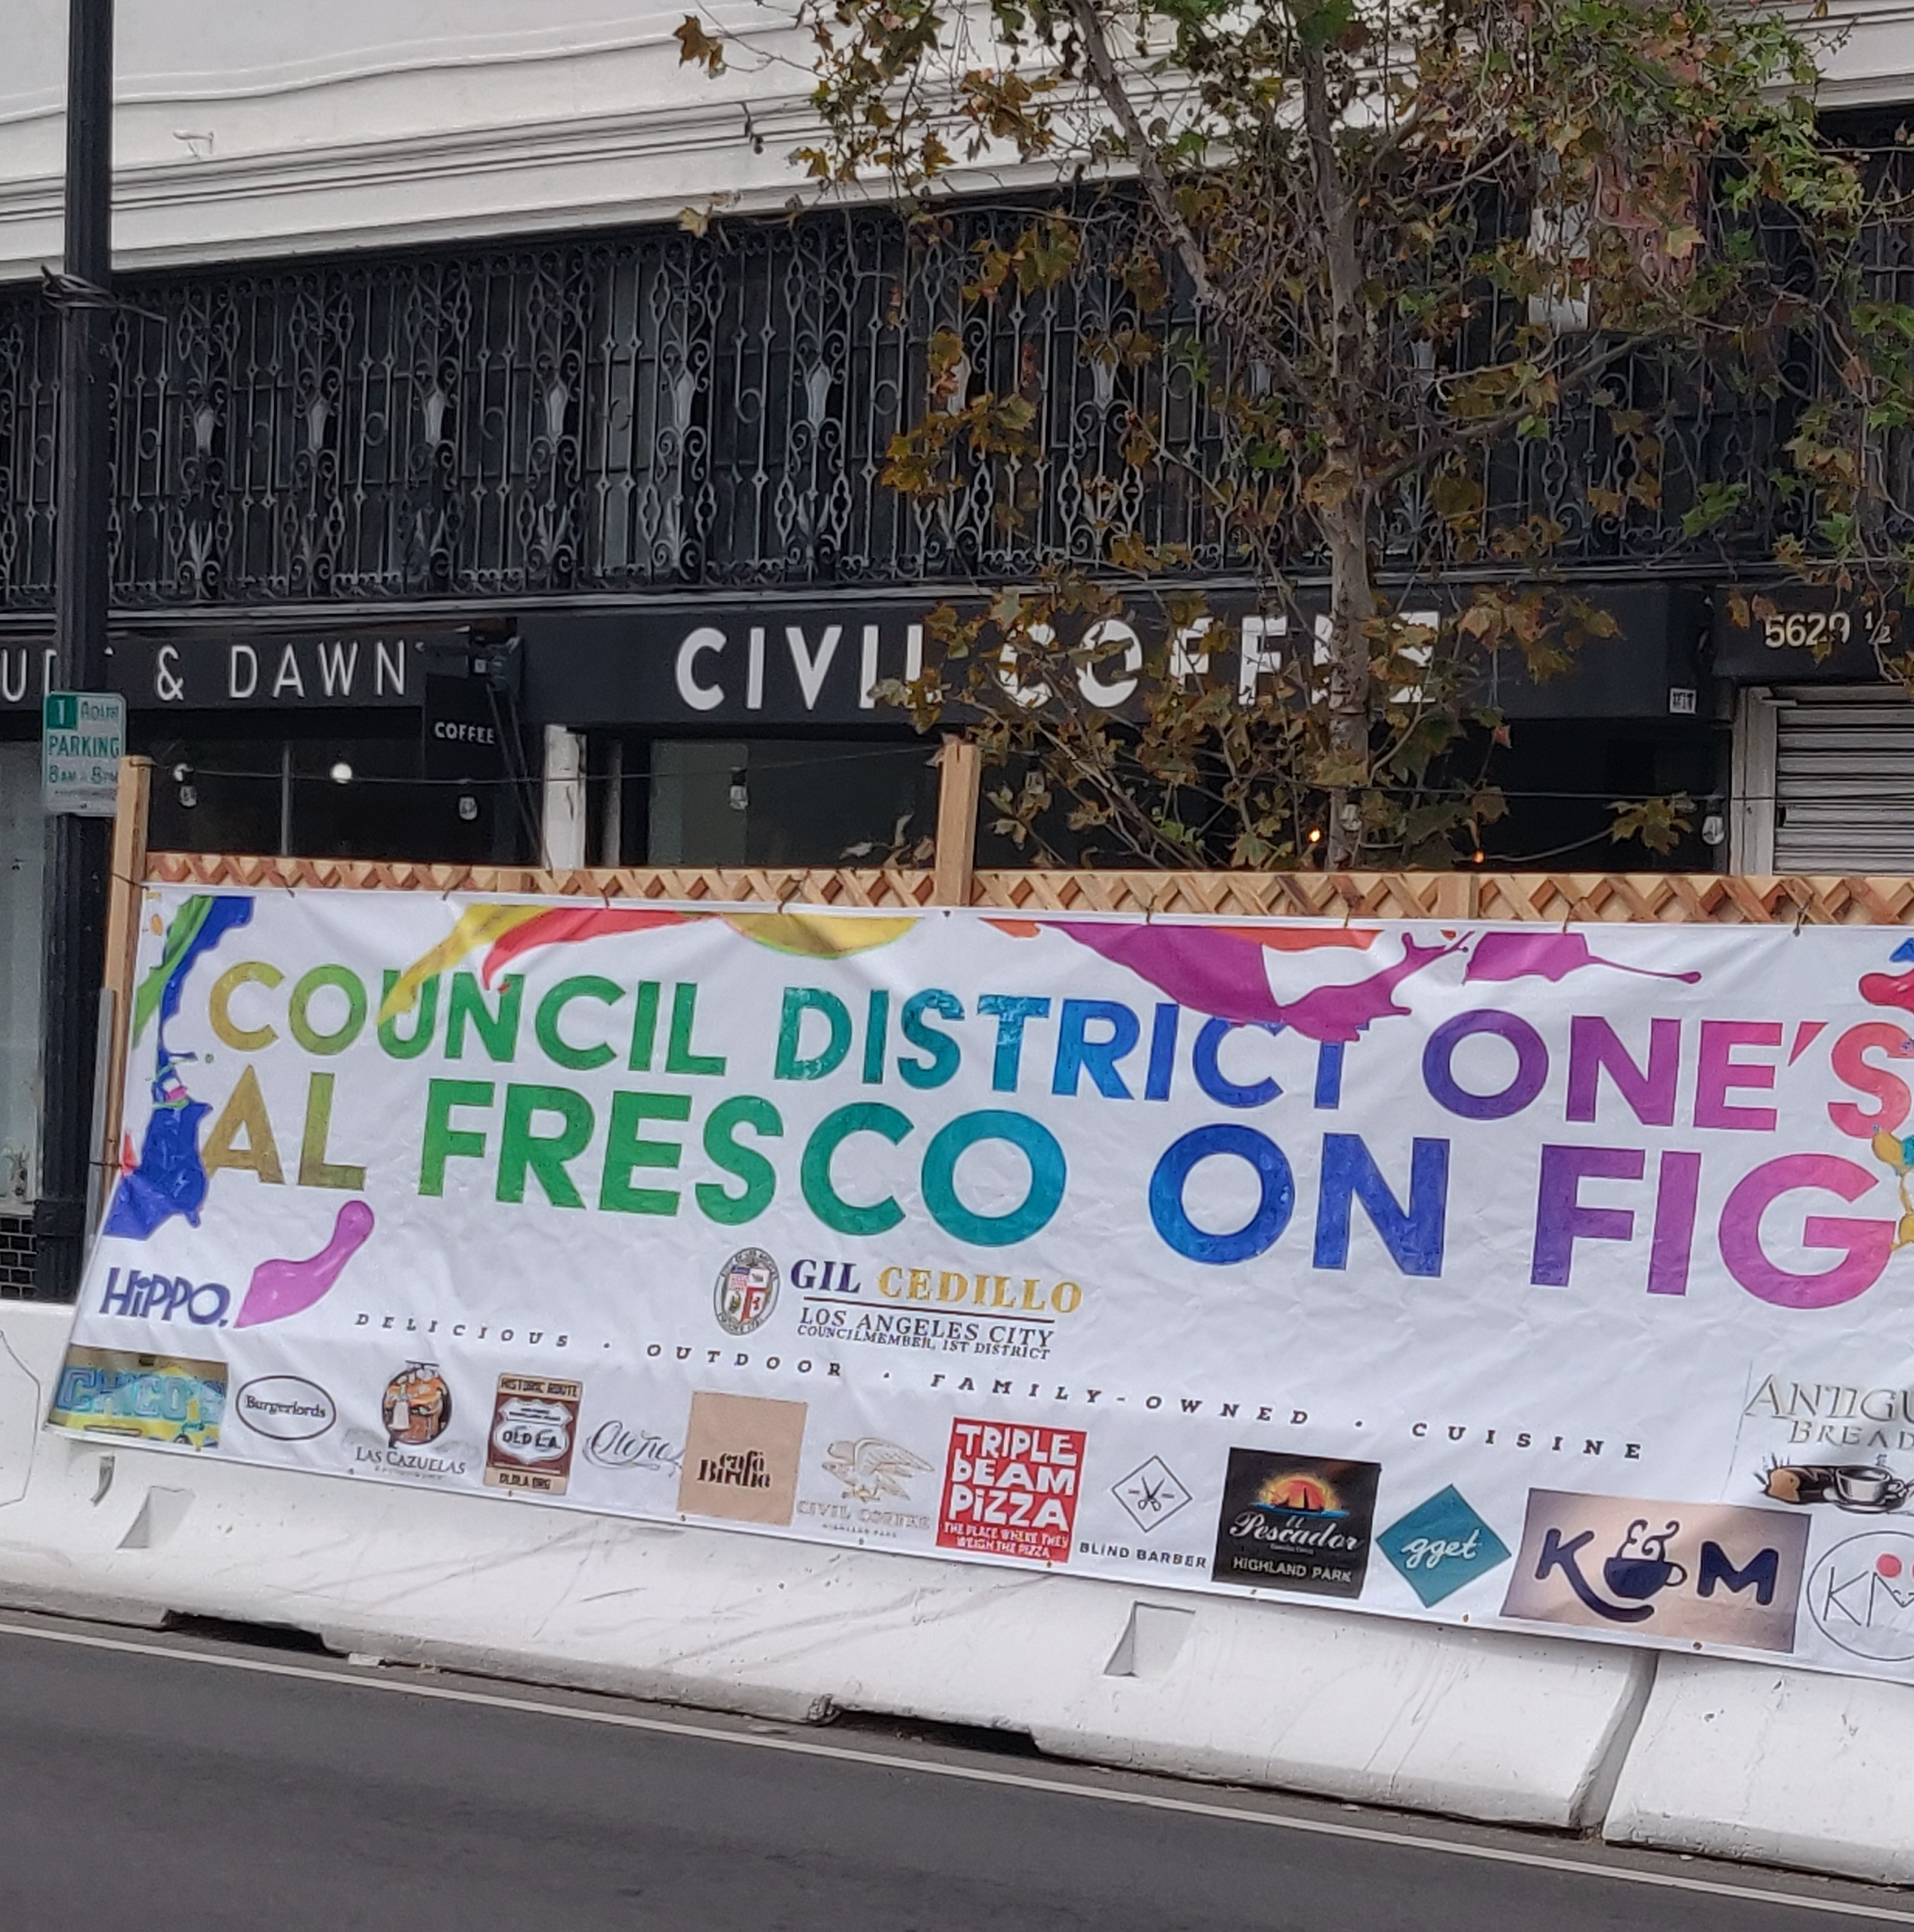 Councilmember Cedillo Installs Streetscapes & Outdoor Dining on N. Figueroa St. in Highland Park 4-14-2021 Photo 1